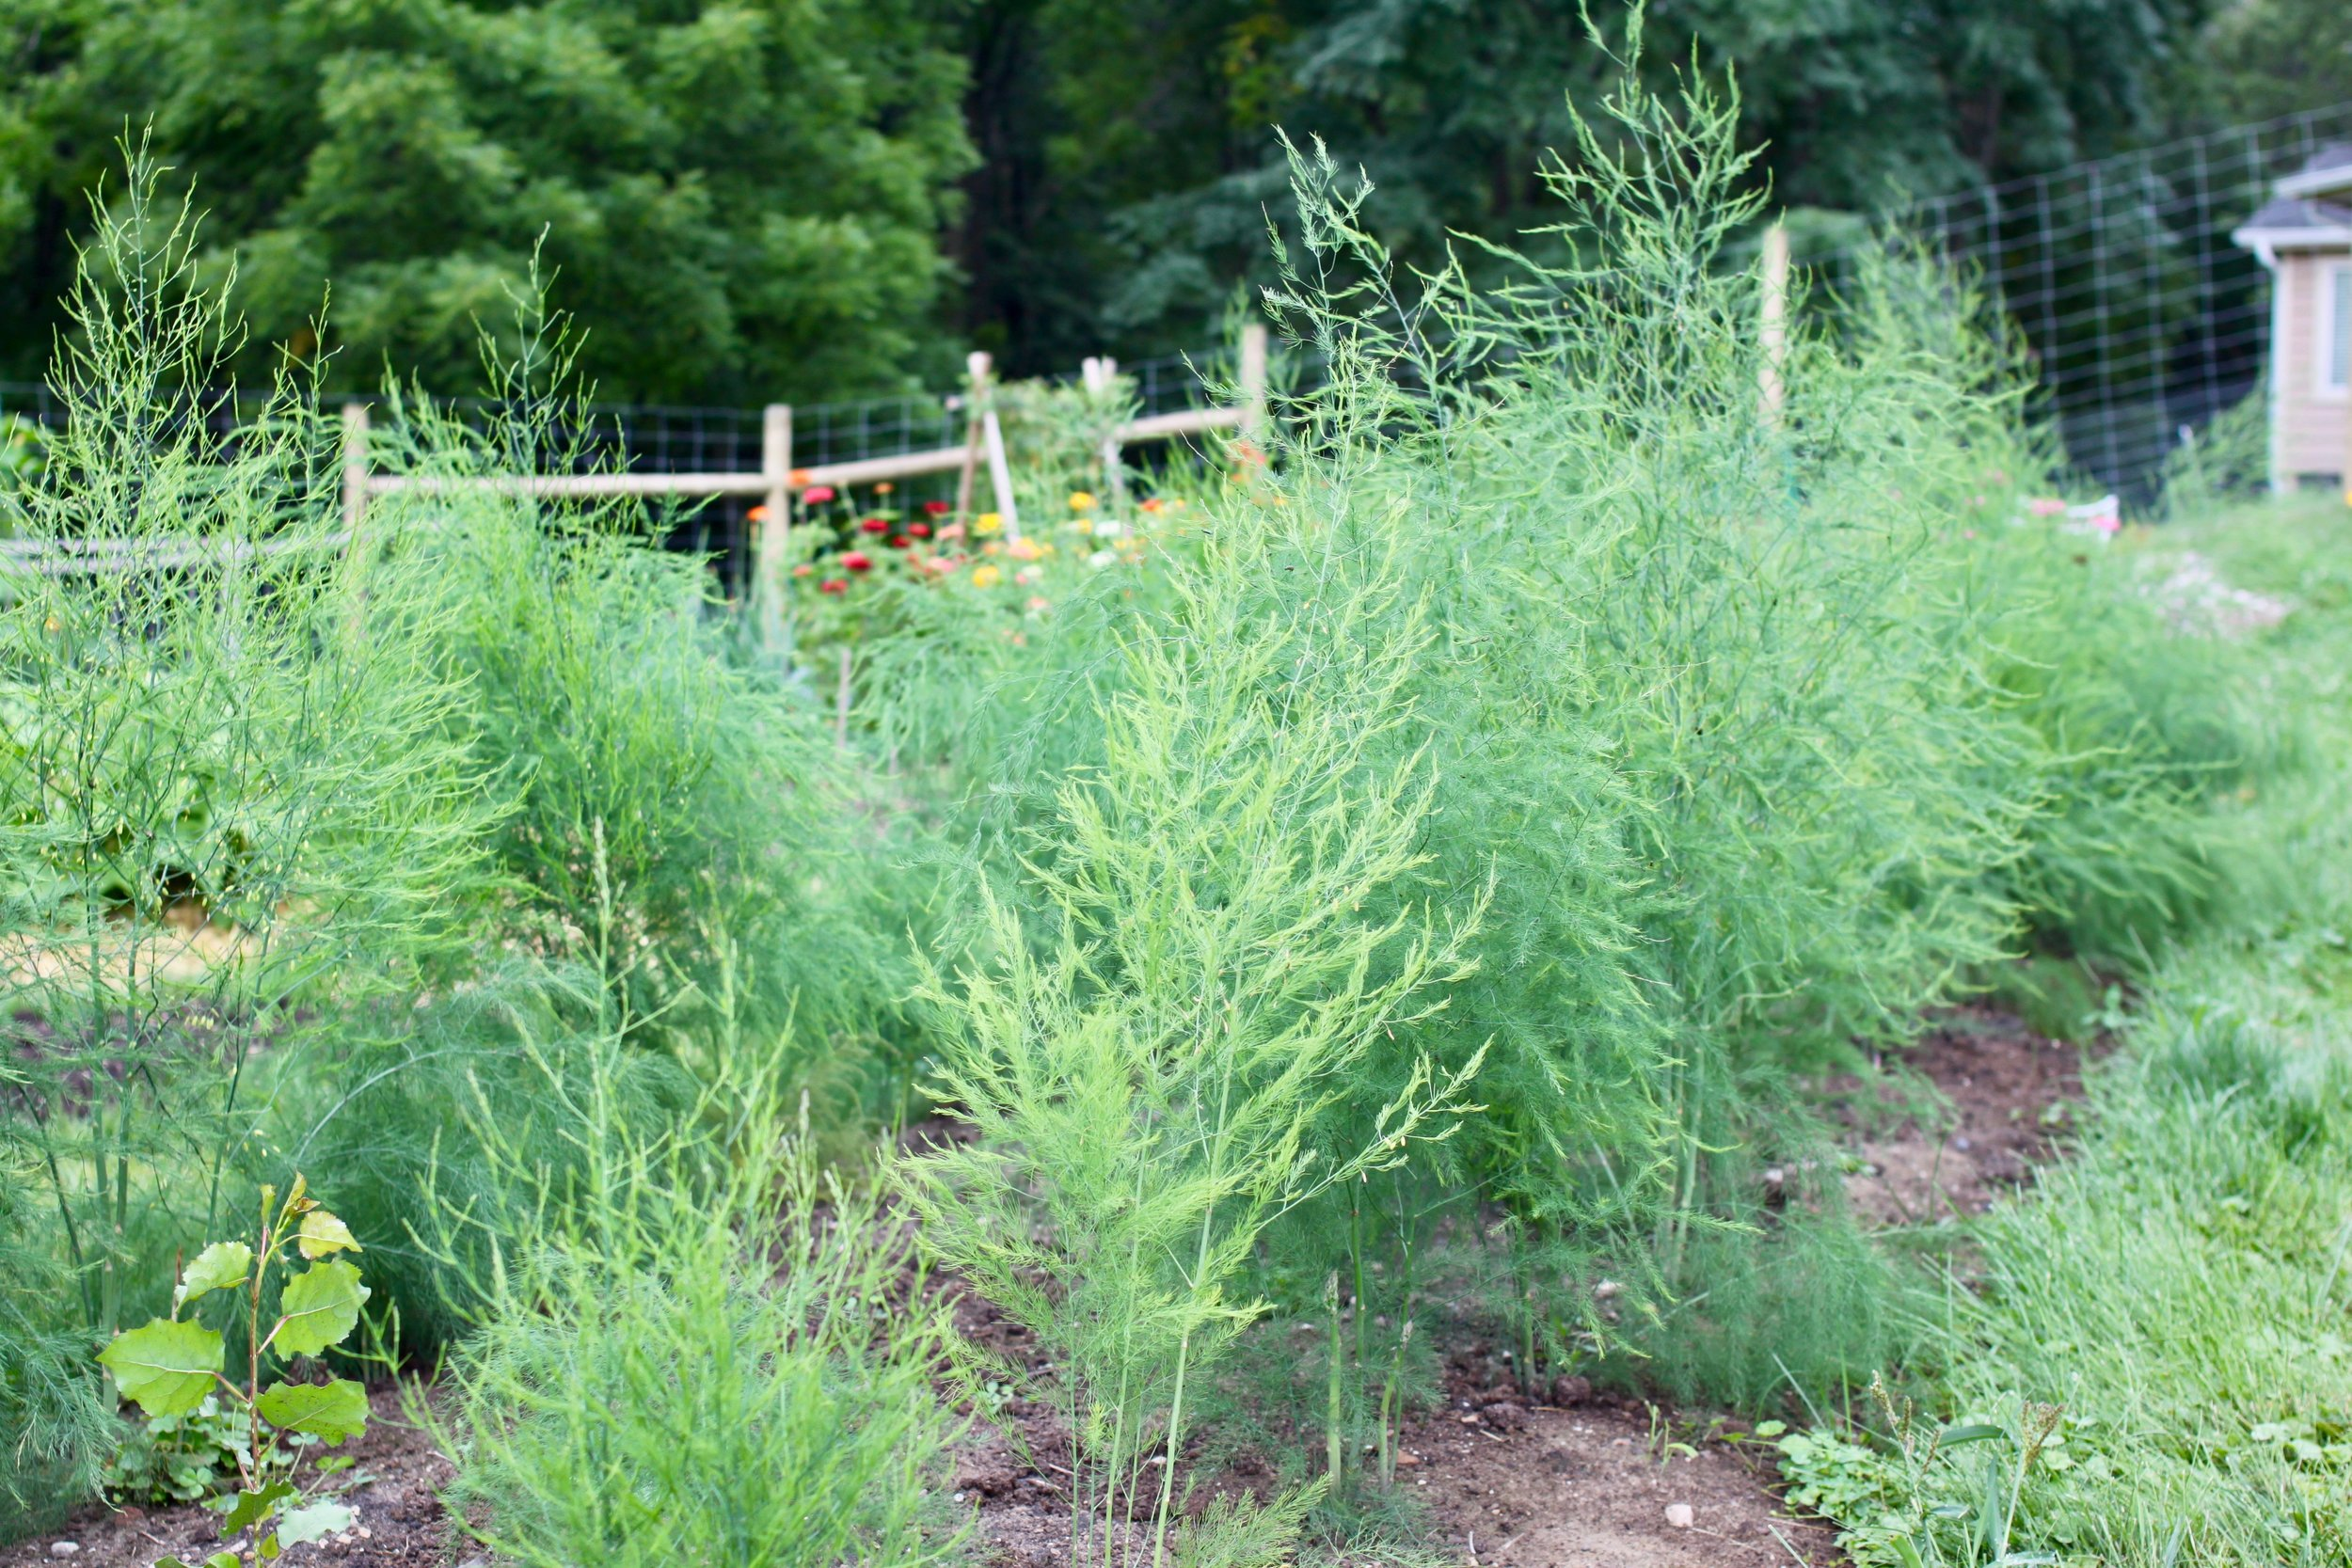 By the end of the first summer and less than a year old, this is what our asparagus patch looked like. All summer long new and thicker spears continued to erupt from the plants, which meant really good things were happening underground with the developing root system.